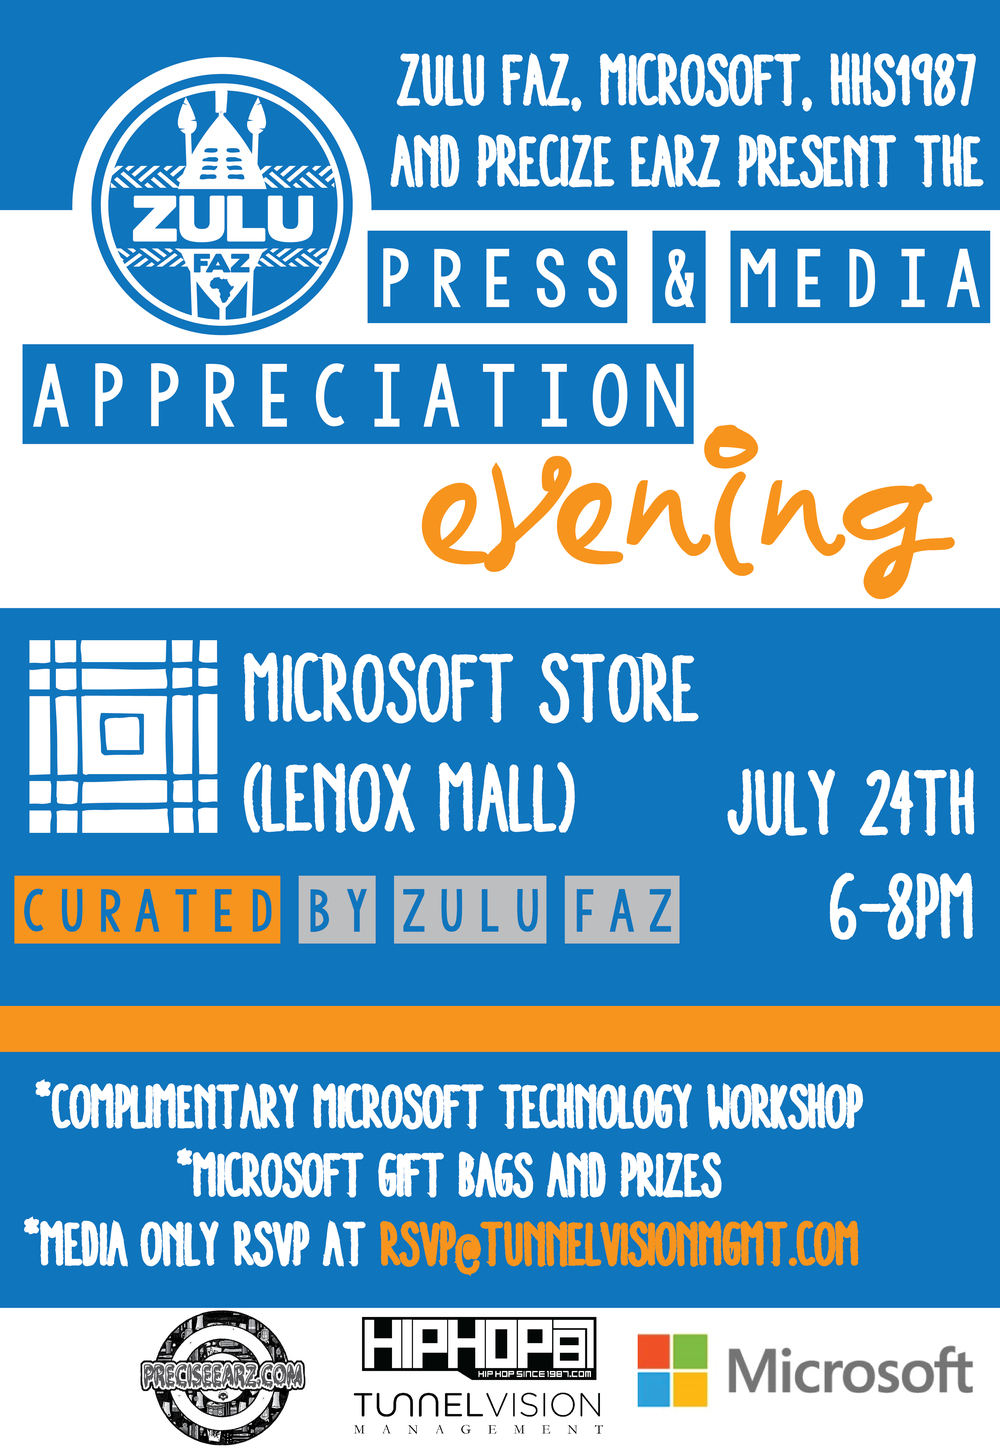 Microsoft, HipHop Since 1987, Precise Earz and I have teamed up to present the Press & Media Appreciation Evening on July 24th 2014 from 6-8PM at the Microsoft Store at the Lenox Mall in Atlanta, Georgia. Members of press and media in Atlanta are invited. We will be giving a Microsoft Technology Demo, gift bags and prizes. Please RSVP at Rsvp@tunnelvisionmgmt.com